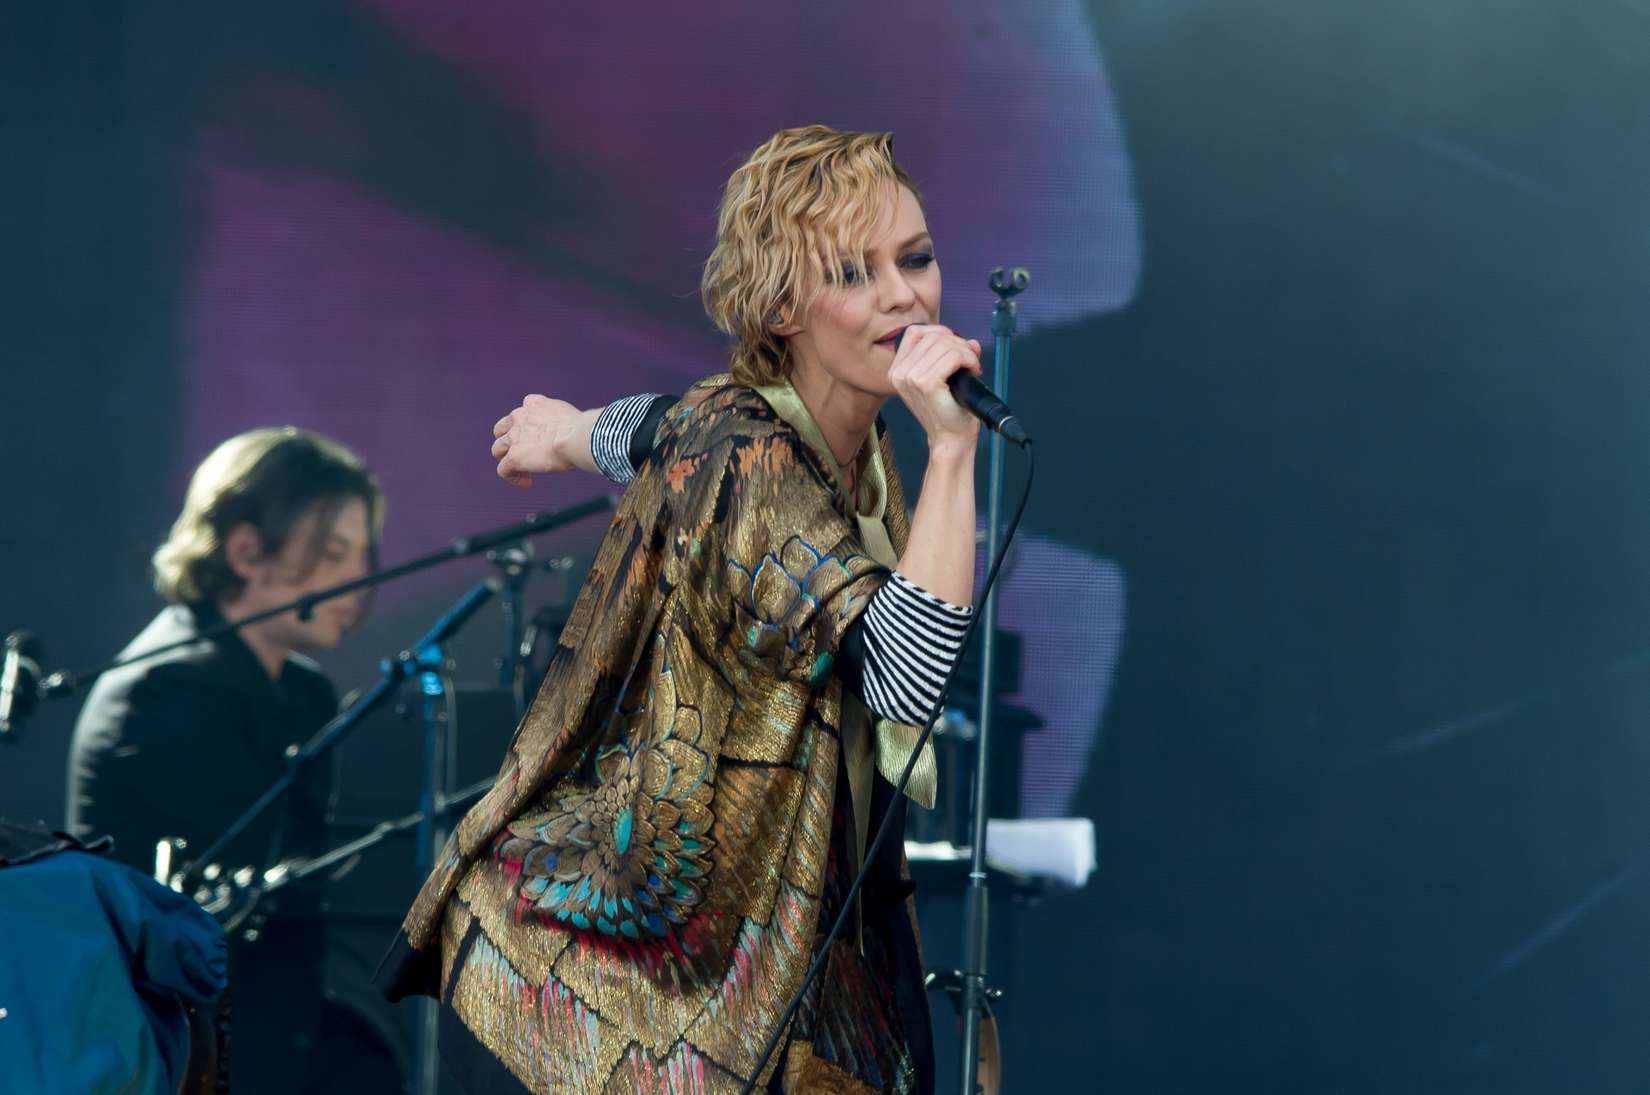 Vanessa Paradis Live at Solidays in Paris